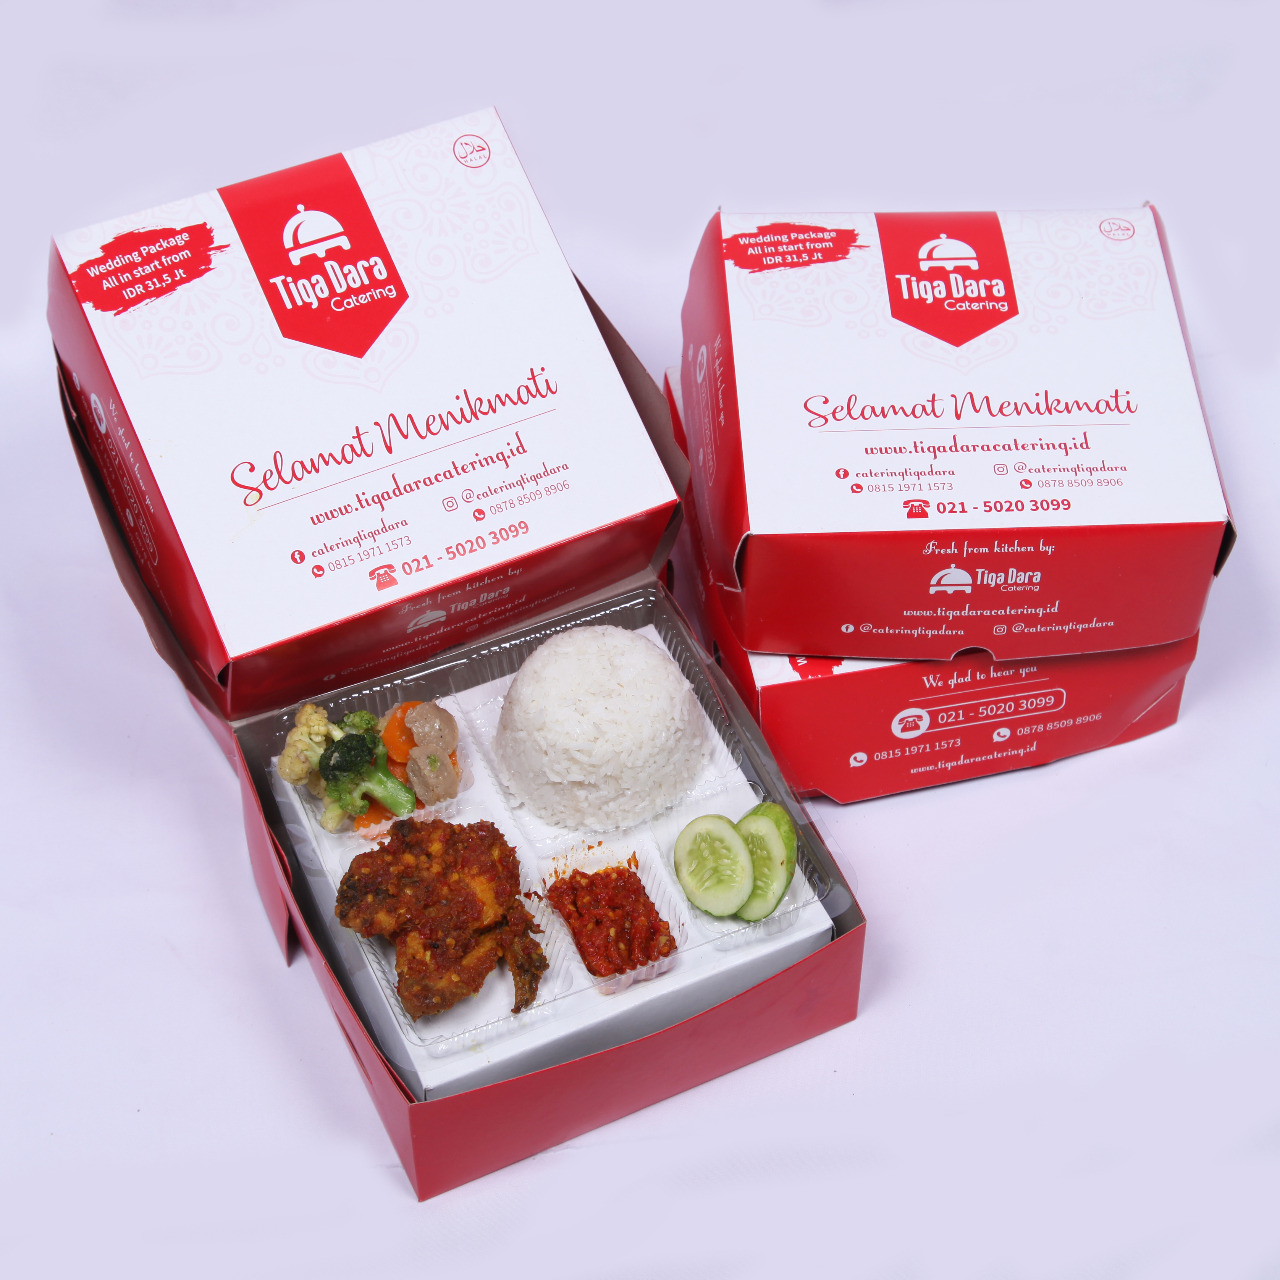 tiga_dara_*Nasi Box_Business Class | Paket 9